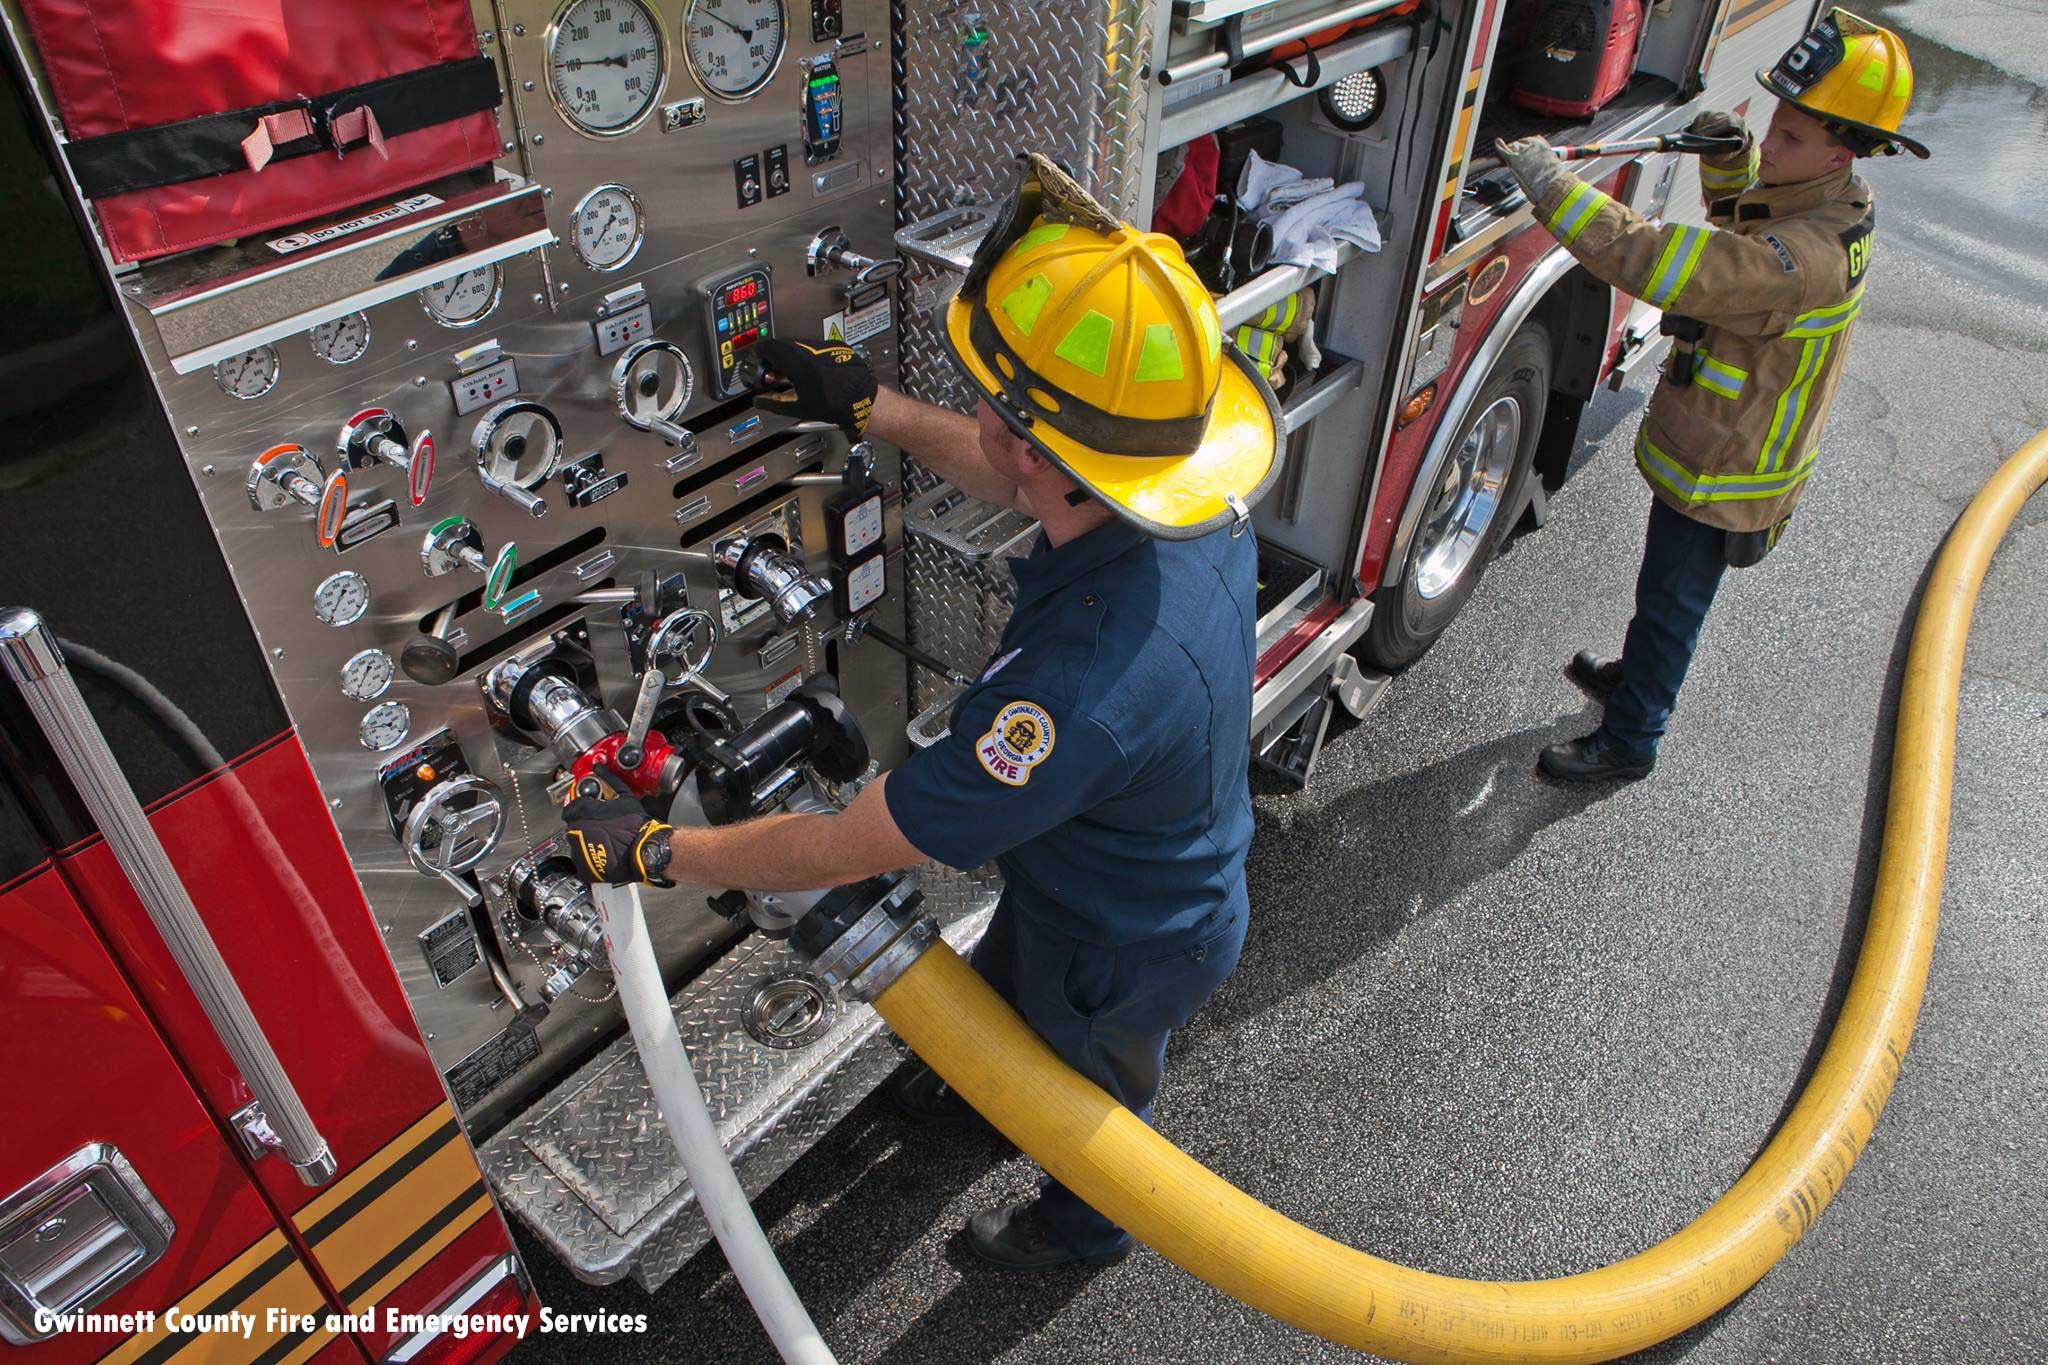 Firefighters work the pump panel